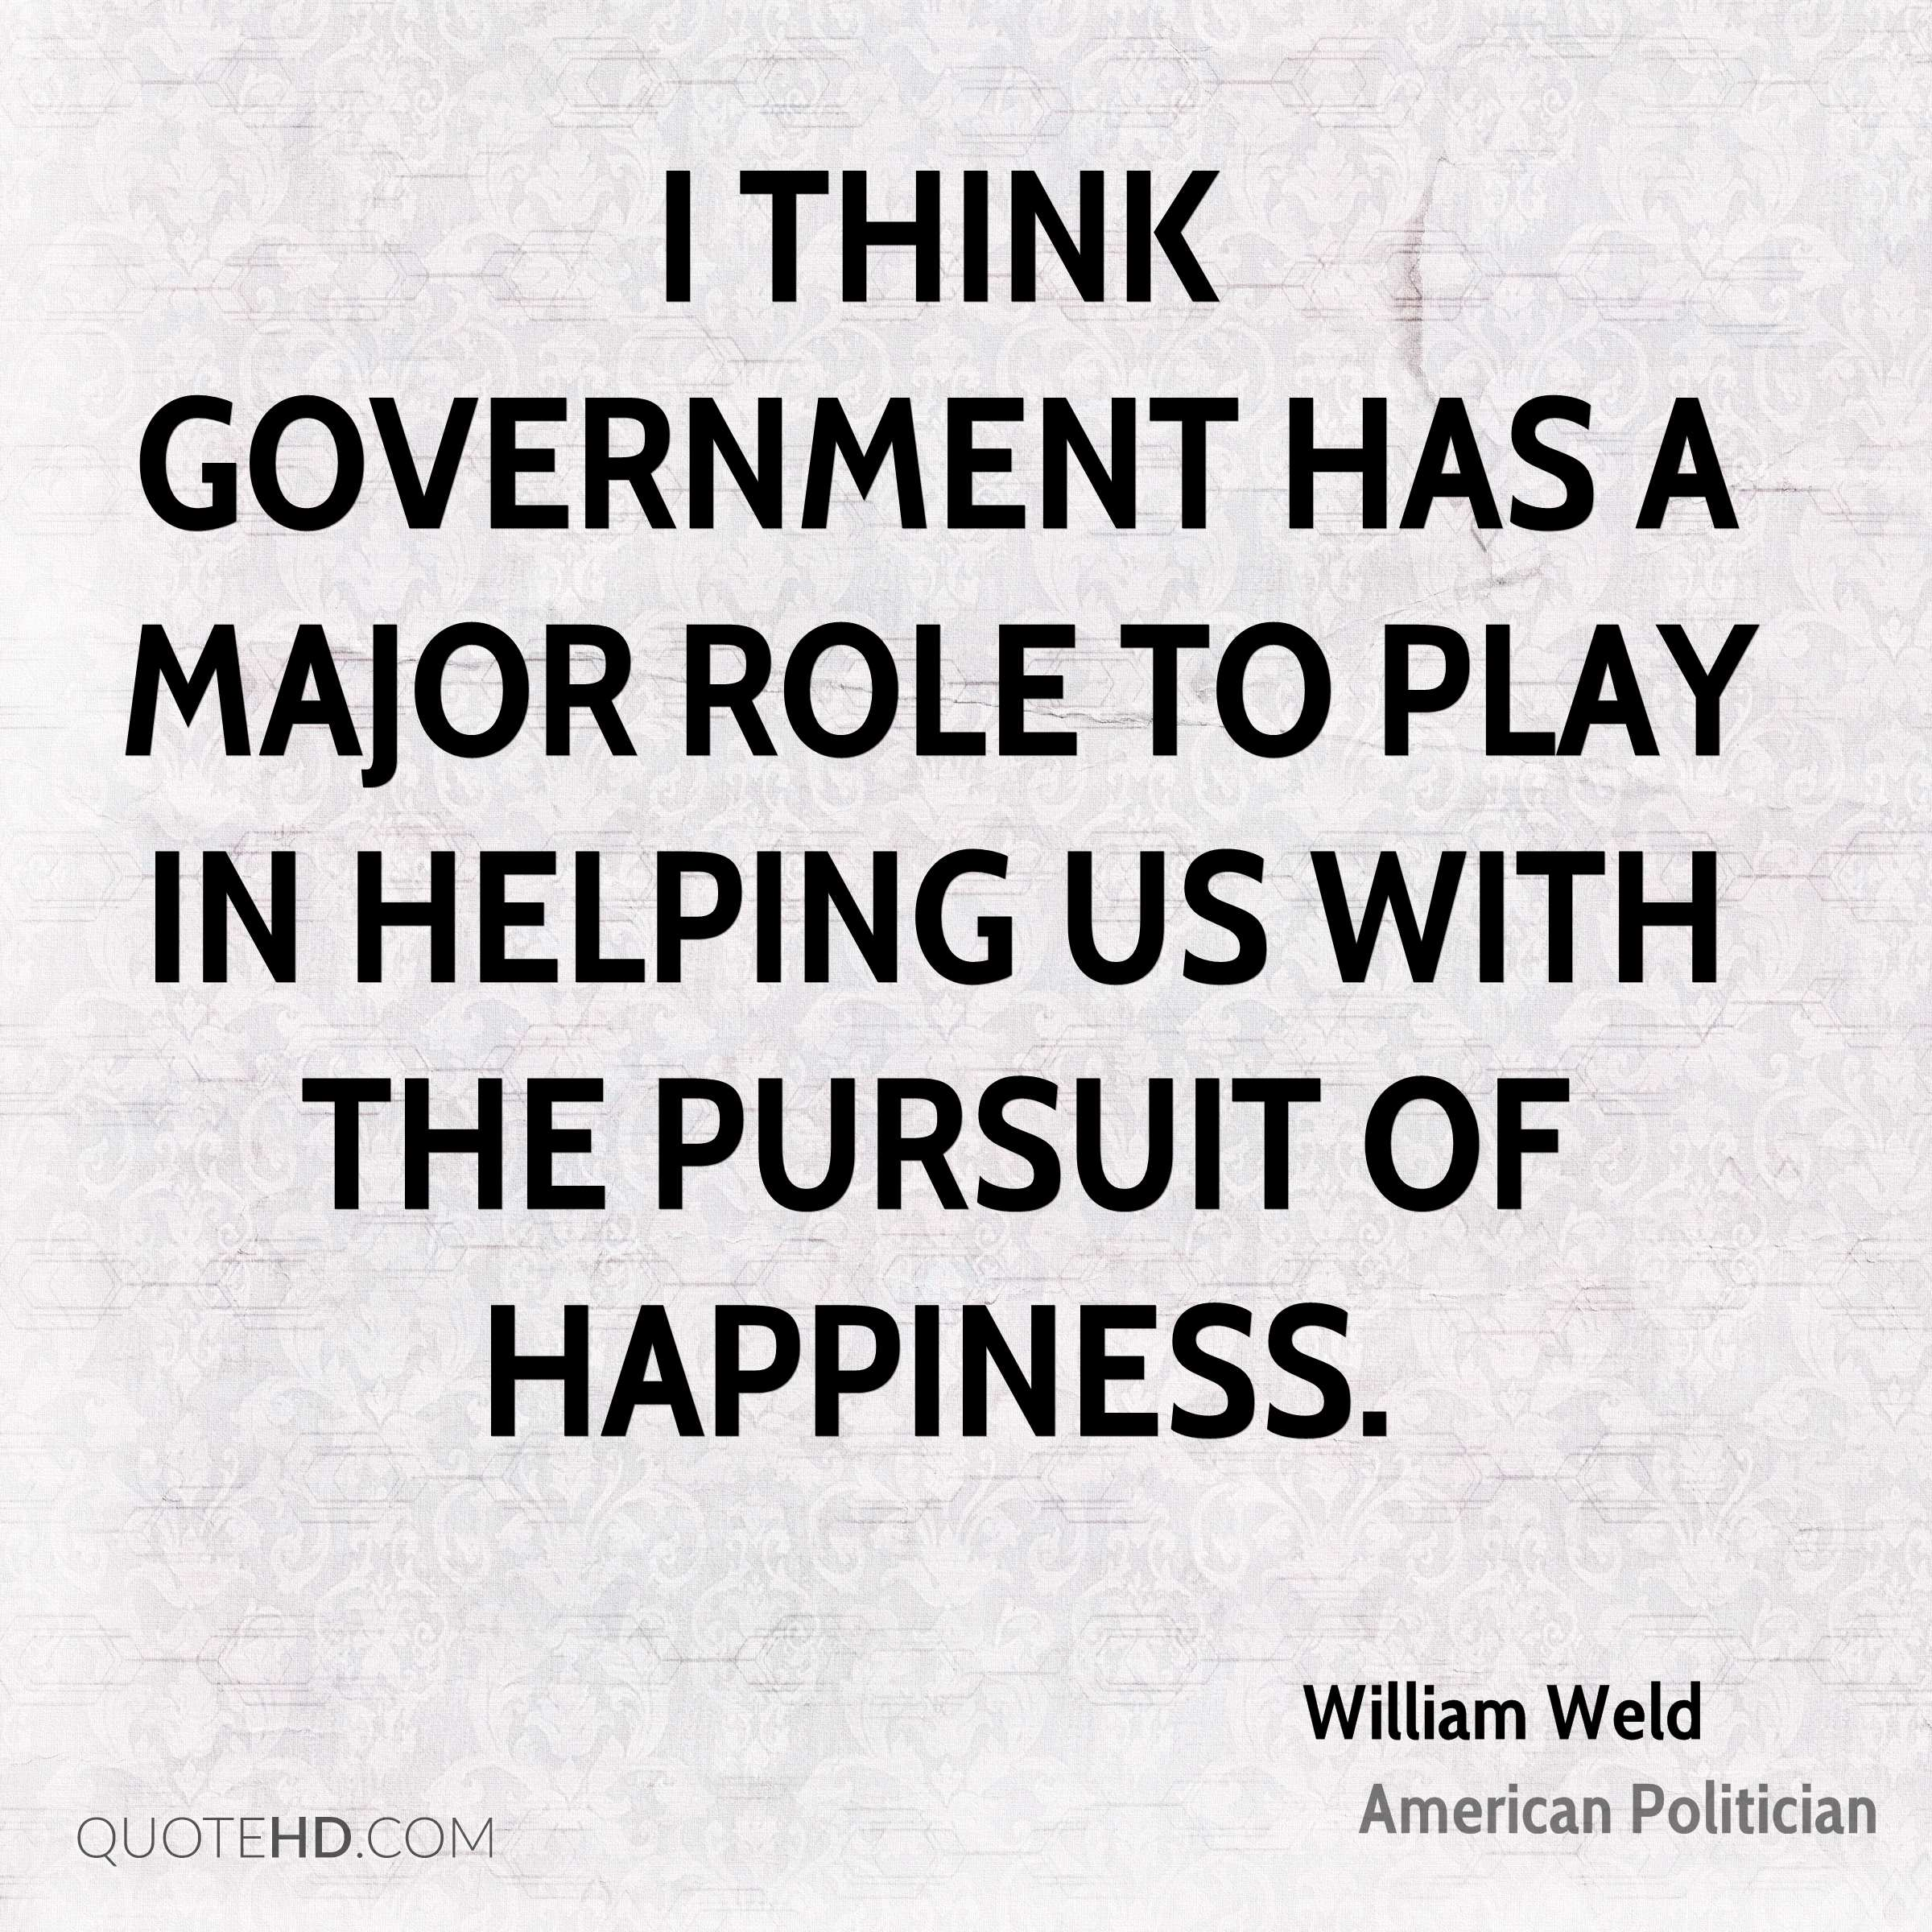 I think government has a major role to play in helping us with the pursuit of happiness.